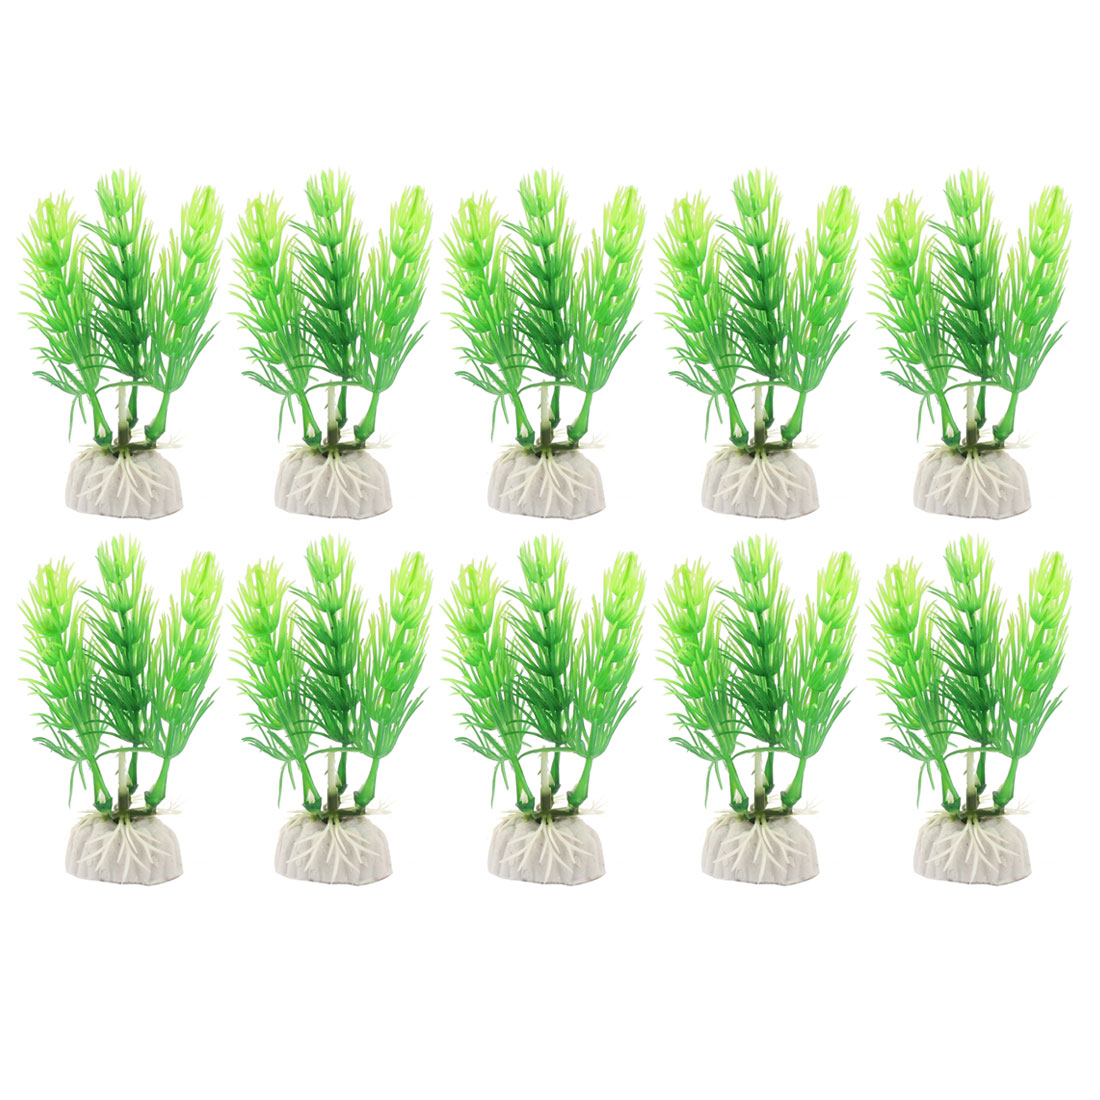 10pcs Green Plastic Plants Aquarium Fish Tank Decoration Ornament